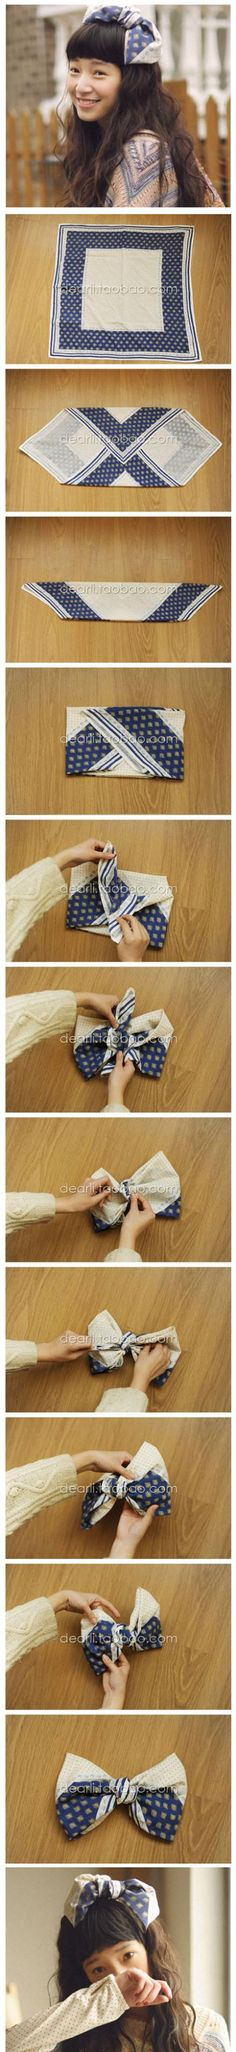 Tie a Square Scarf into a Large Bow - A creative why to gift a scarf on top of wrapped package...